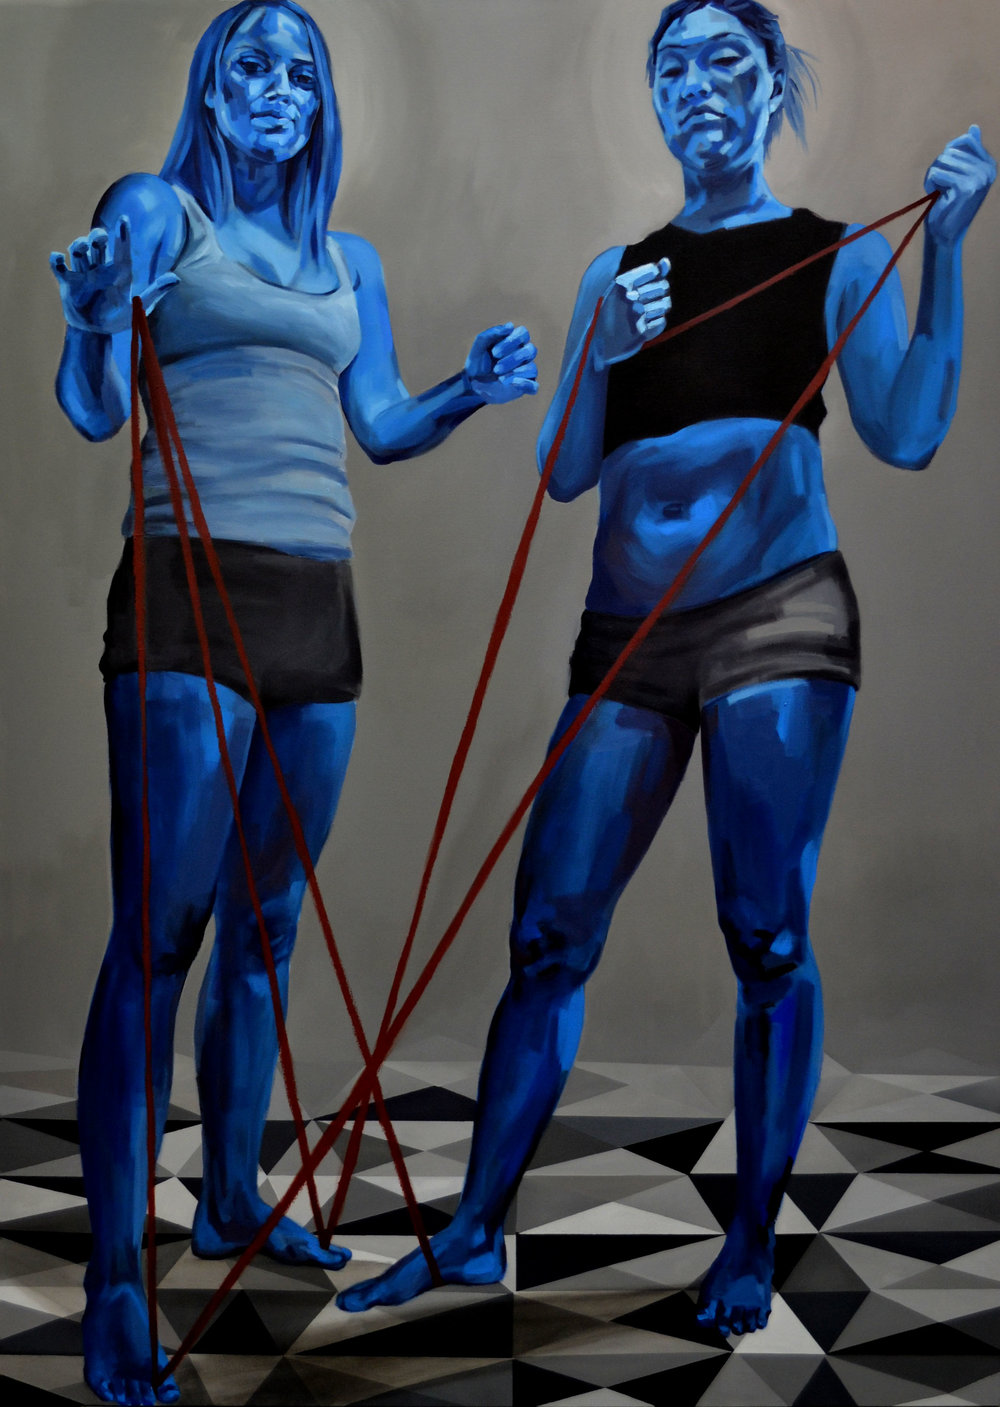 Blue Twins (detail) © Jennifer King